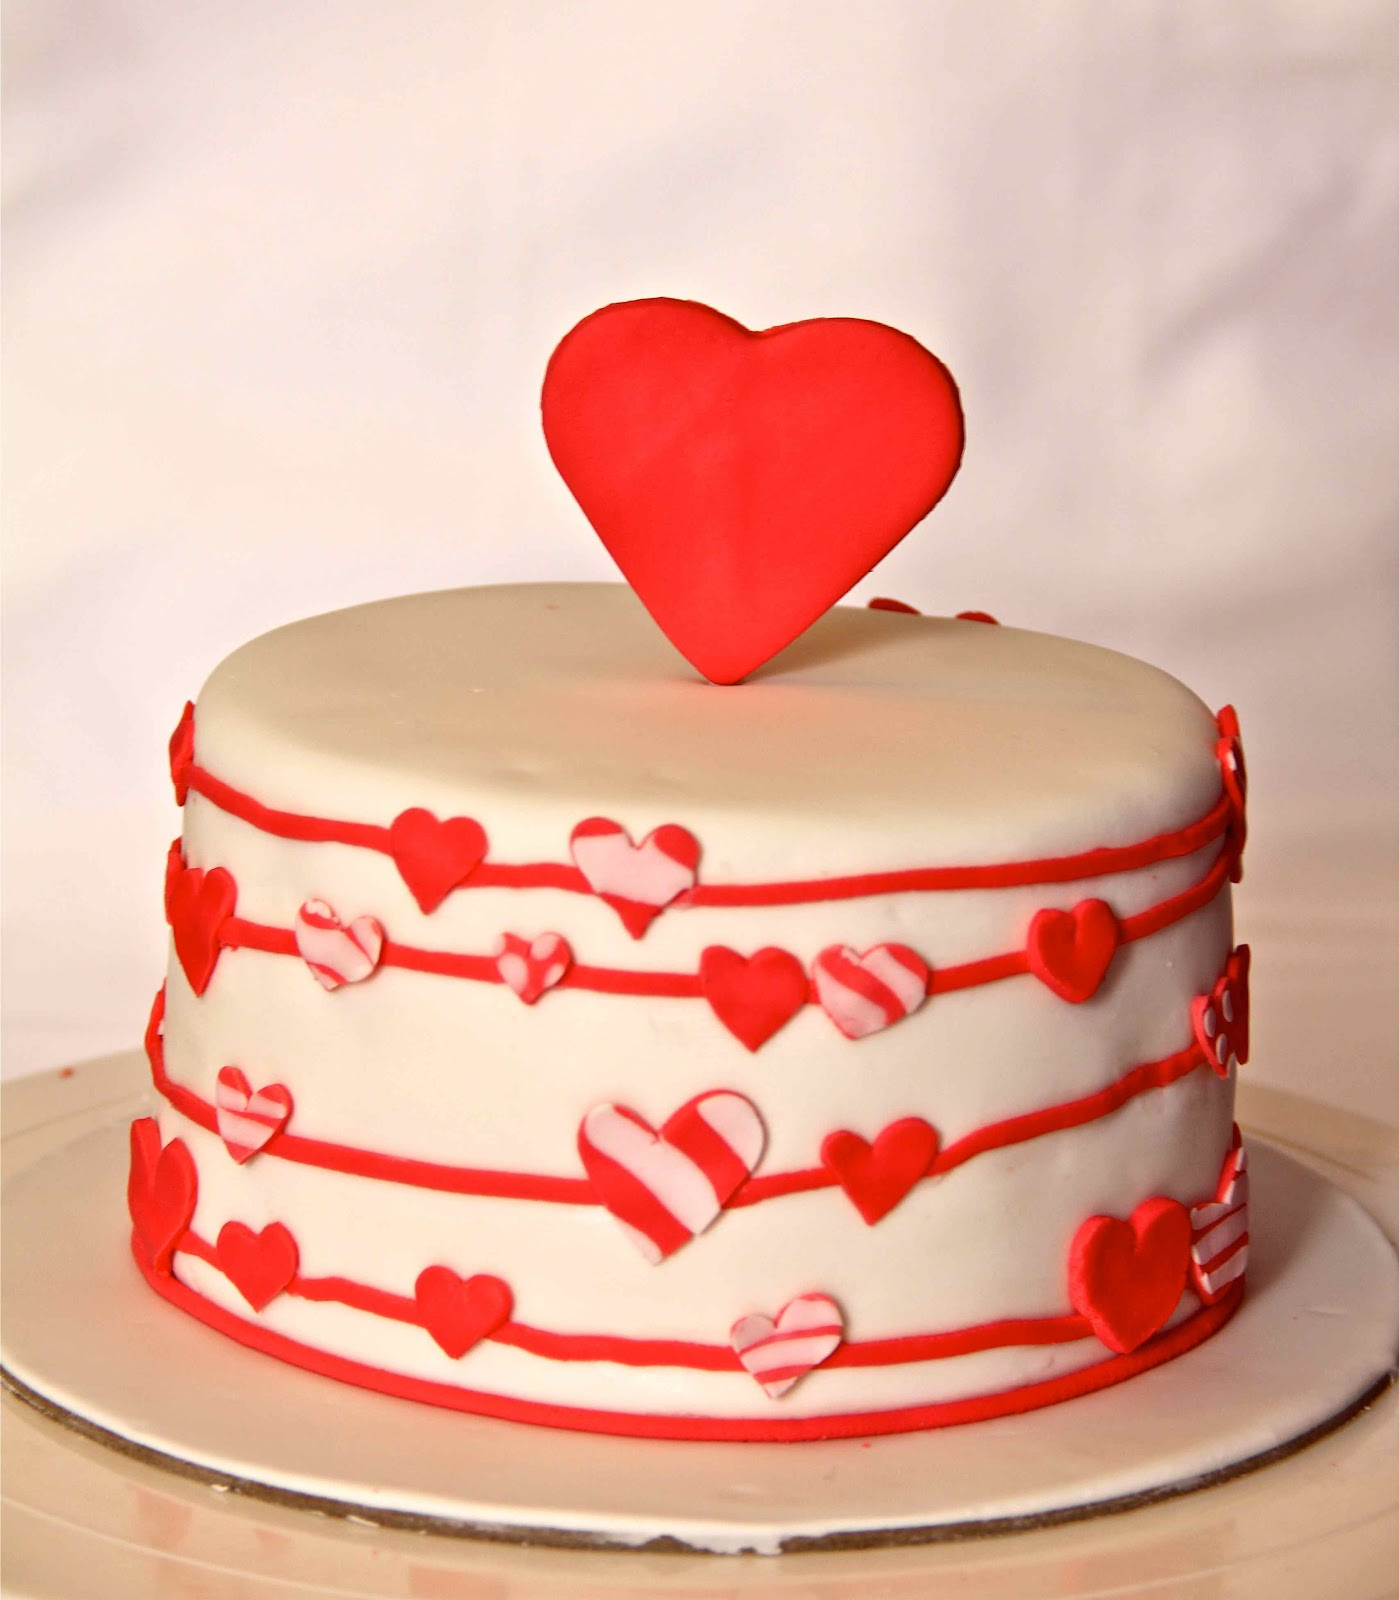 Bake Your Heart With These Lovely Valentine Cake